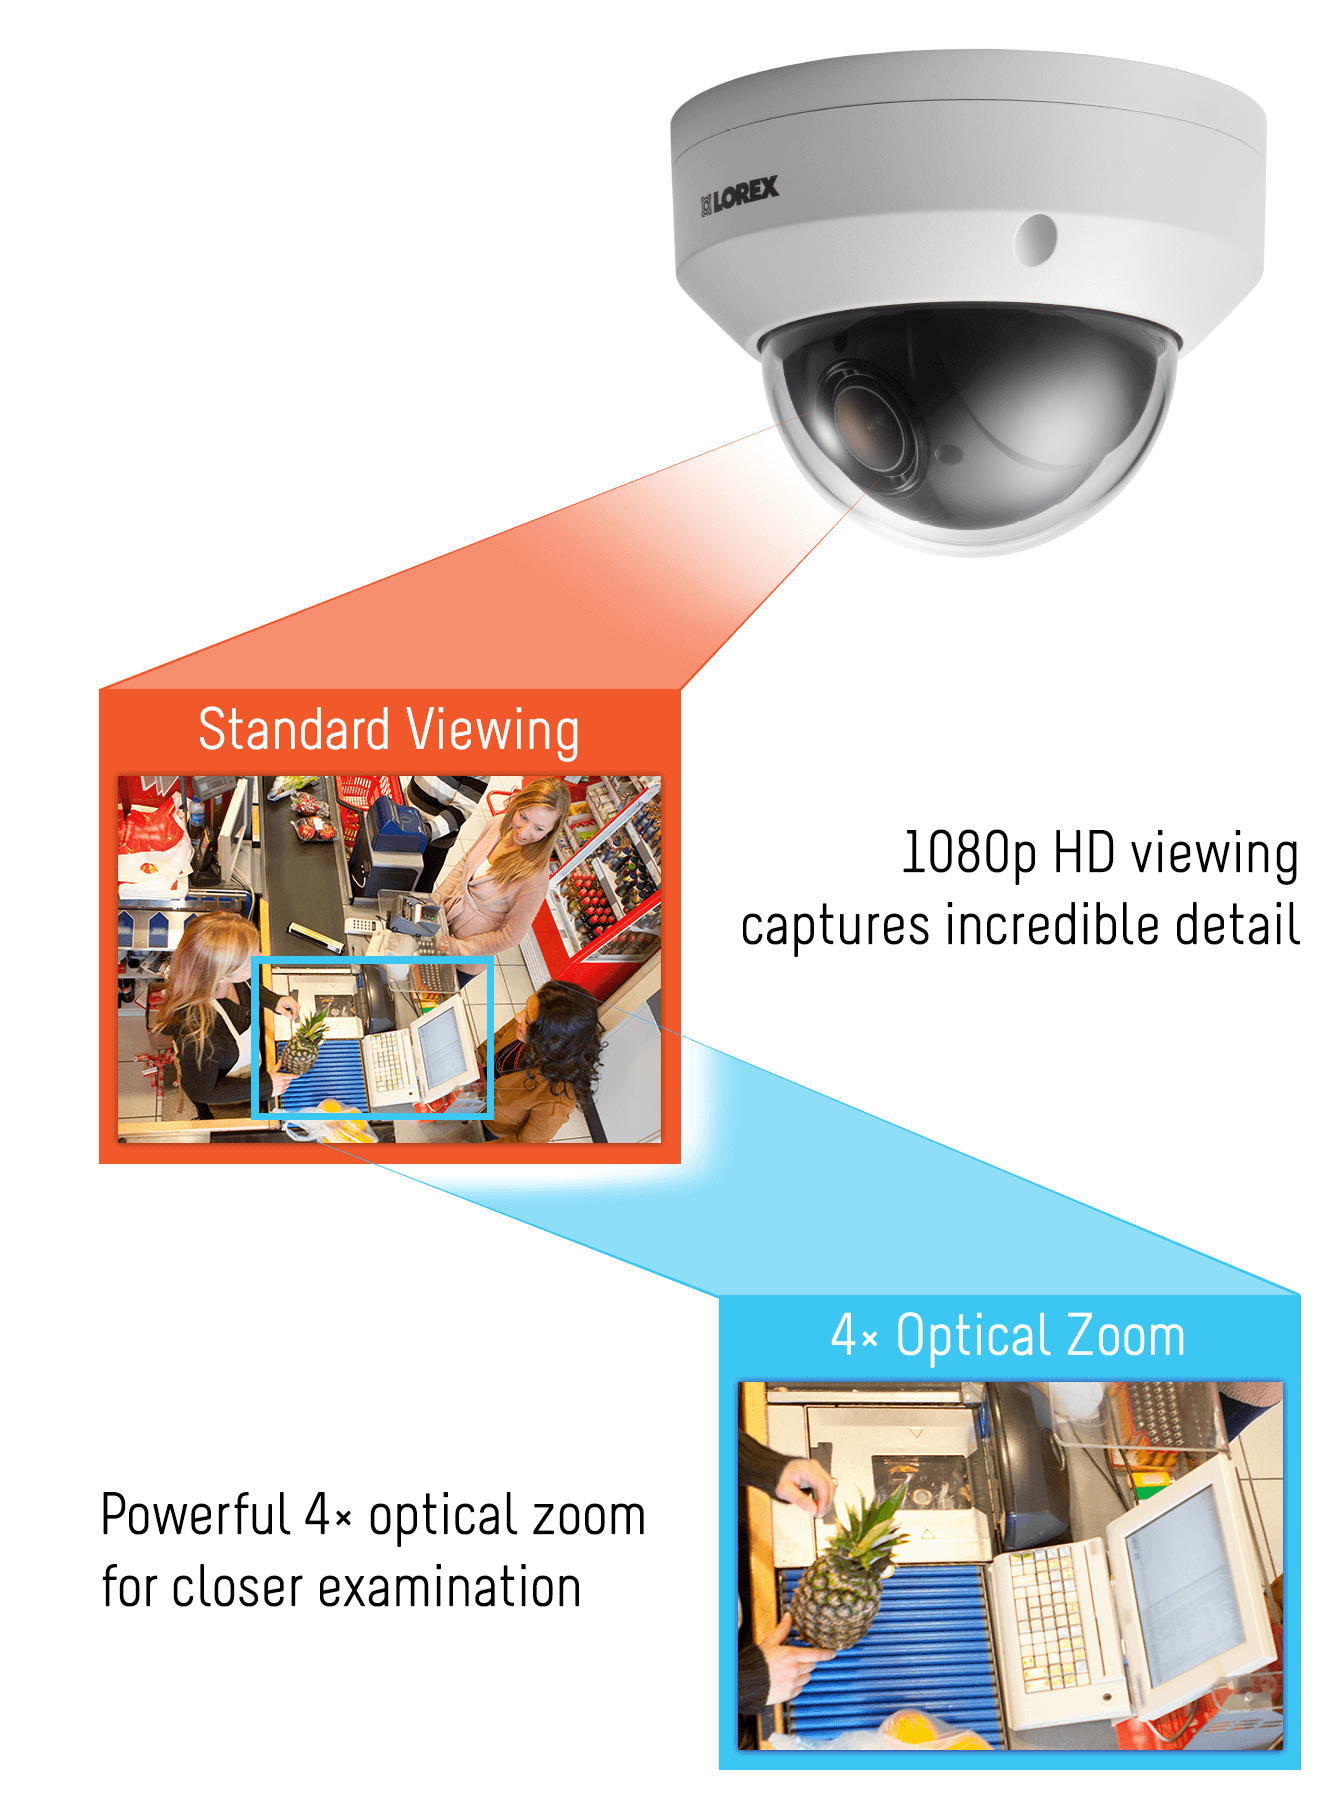 Security camera with optical zoom and digital zoom